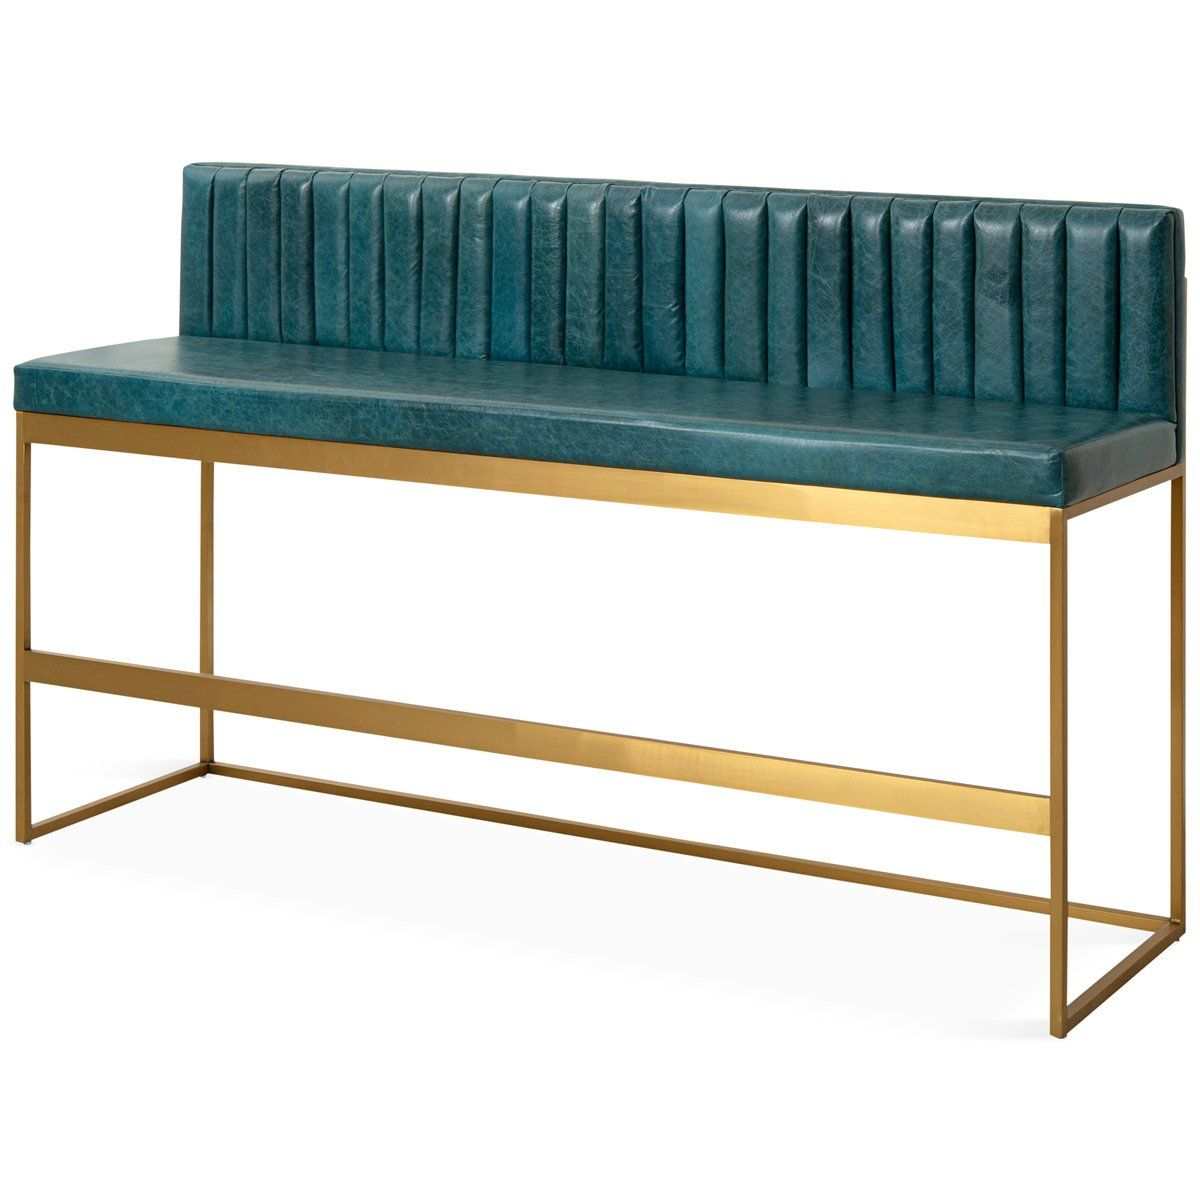 007 Bar Height Bench With Channel Tufting Bar Height Bench Modern Bench Design Counter Height Bench